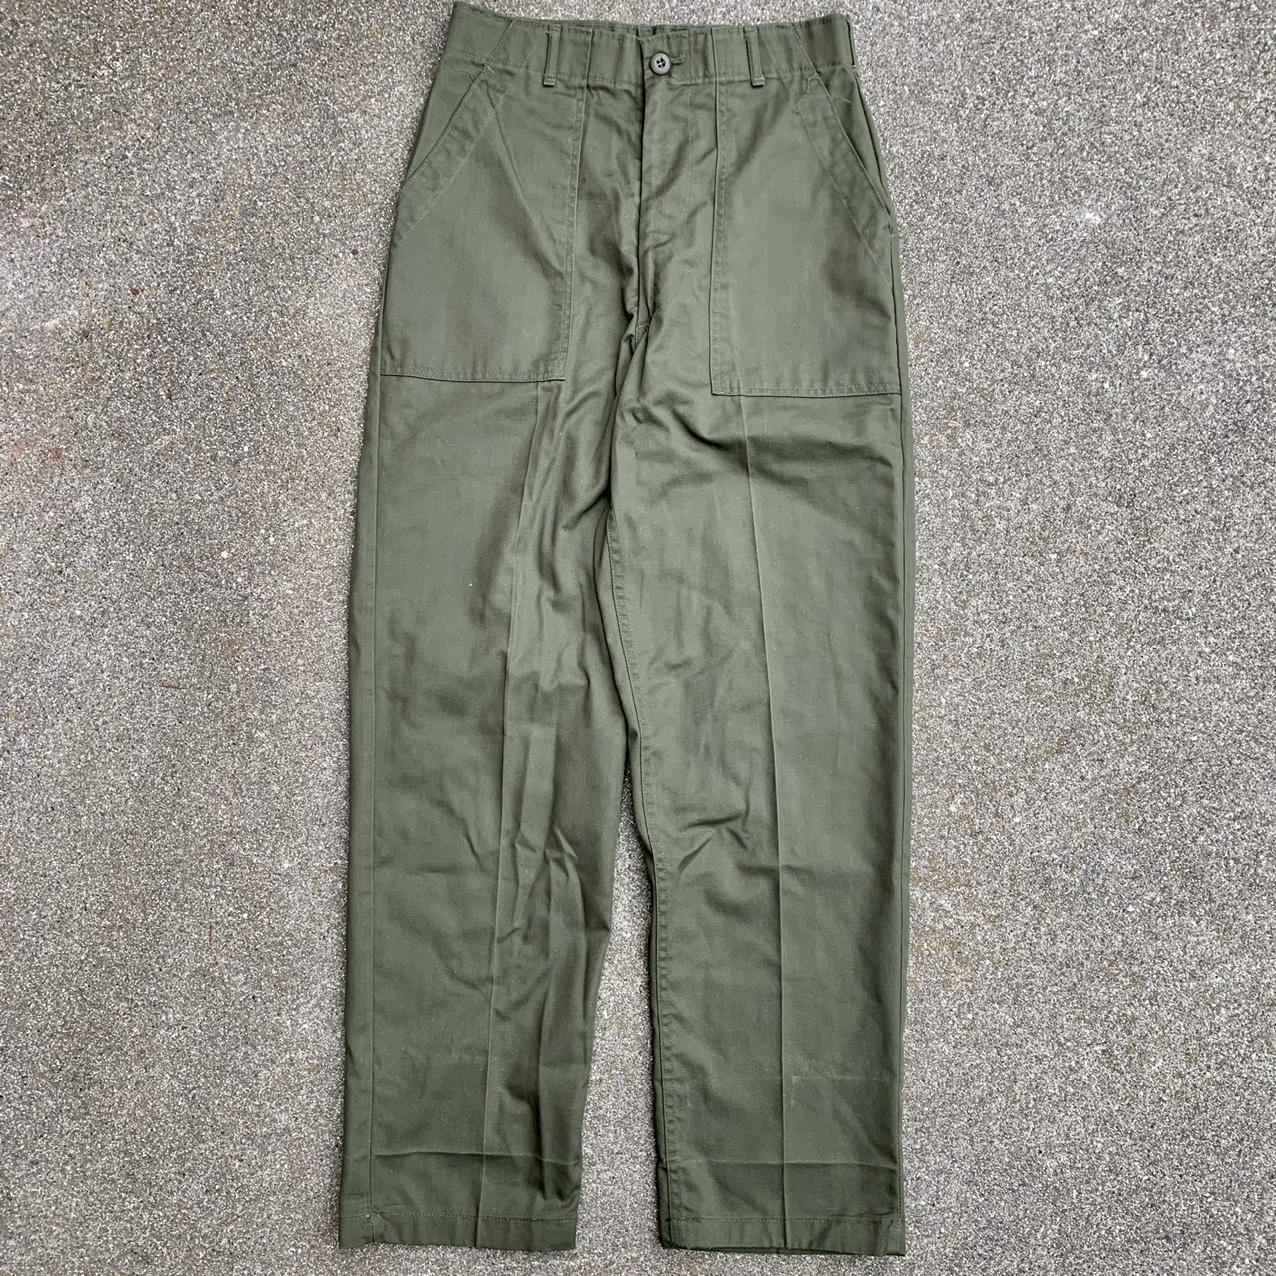 Product Image 1 - 1980s Military Fatigues  Military pants Polyester-cotton blend,